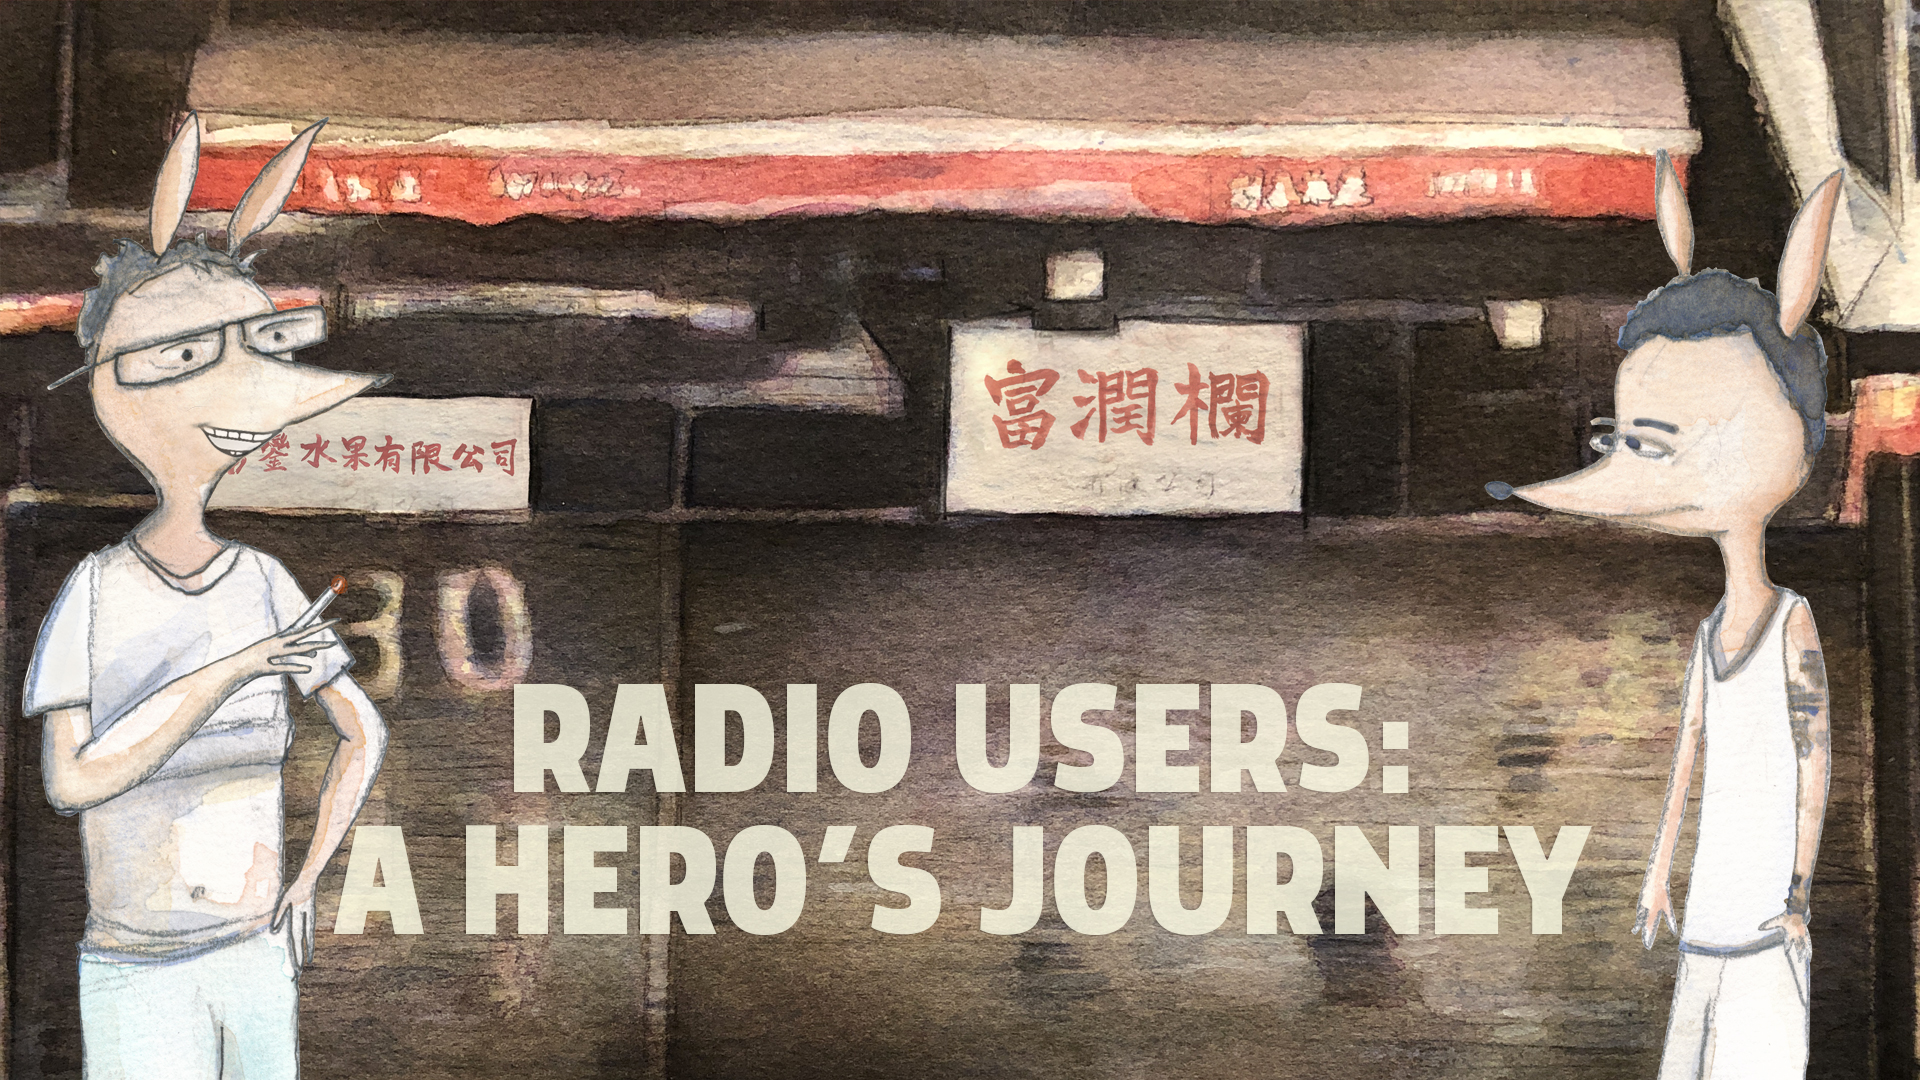 Movie poster for Radio Users: A Hero's Journey